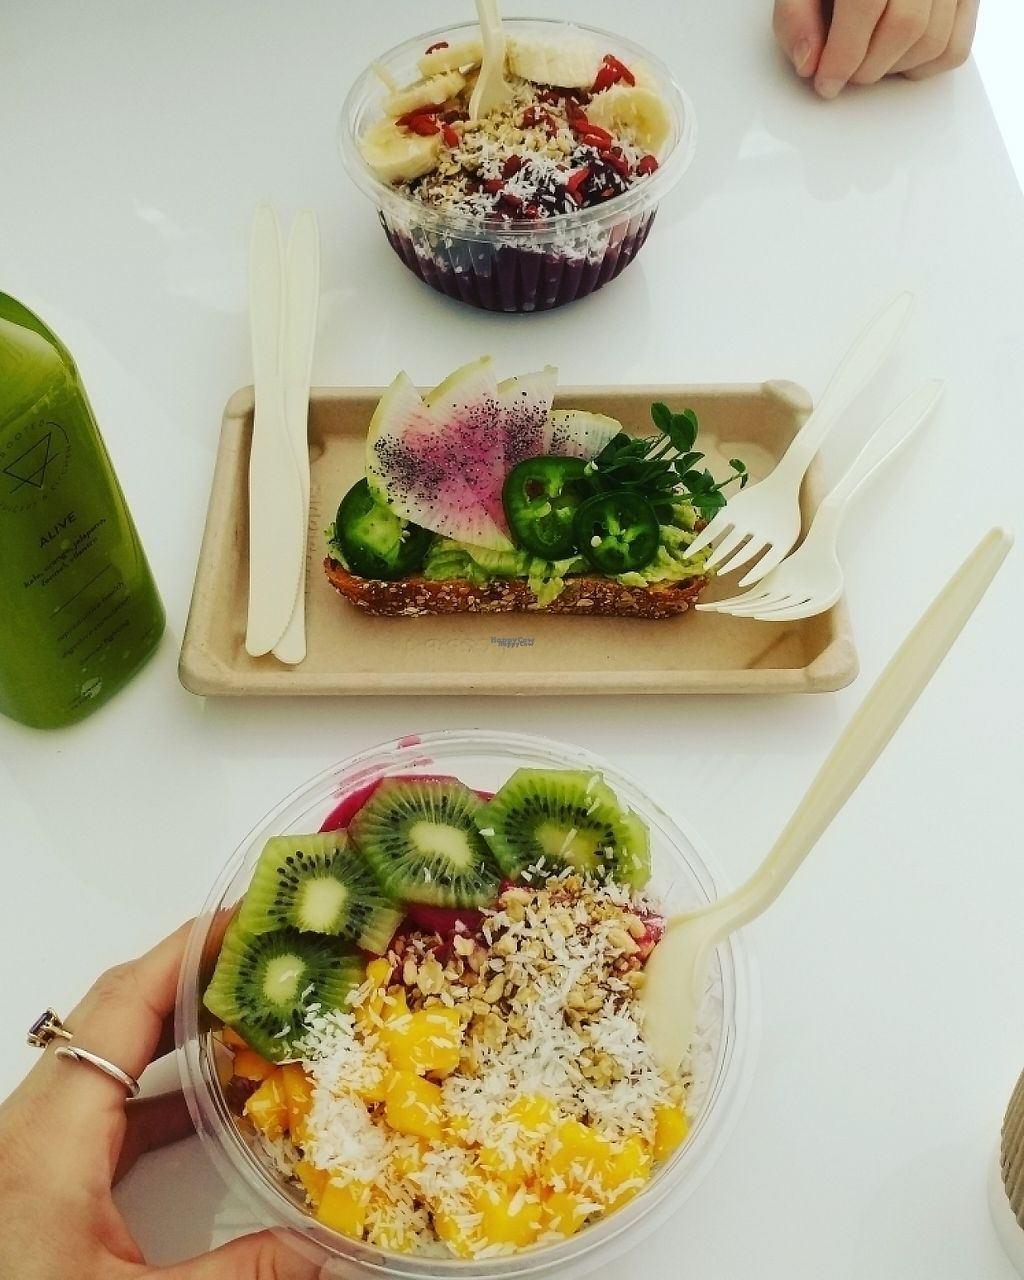 """Photo of Rooted Juicery and Kitchen  by <a href=""""/members/profile/KatBarry"""">KatBarry</a> <br/>Brunch of Smoothie Bowls and Avo Toast <br/> March 15, 2017  - <a href='/contact/abuse/image/63466/236627'>Report</a>"""